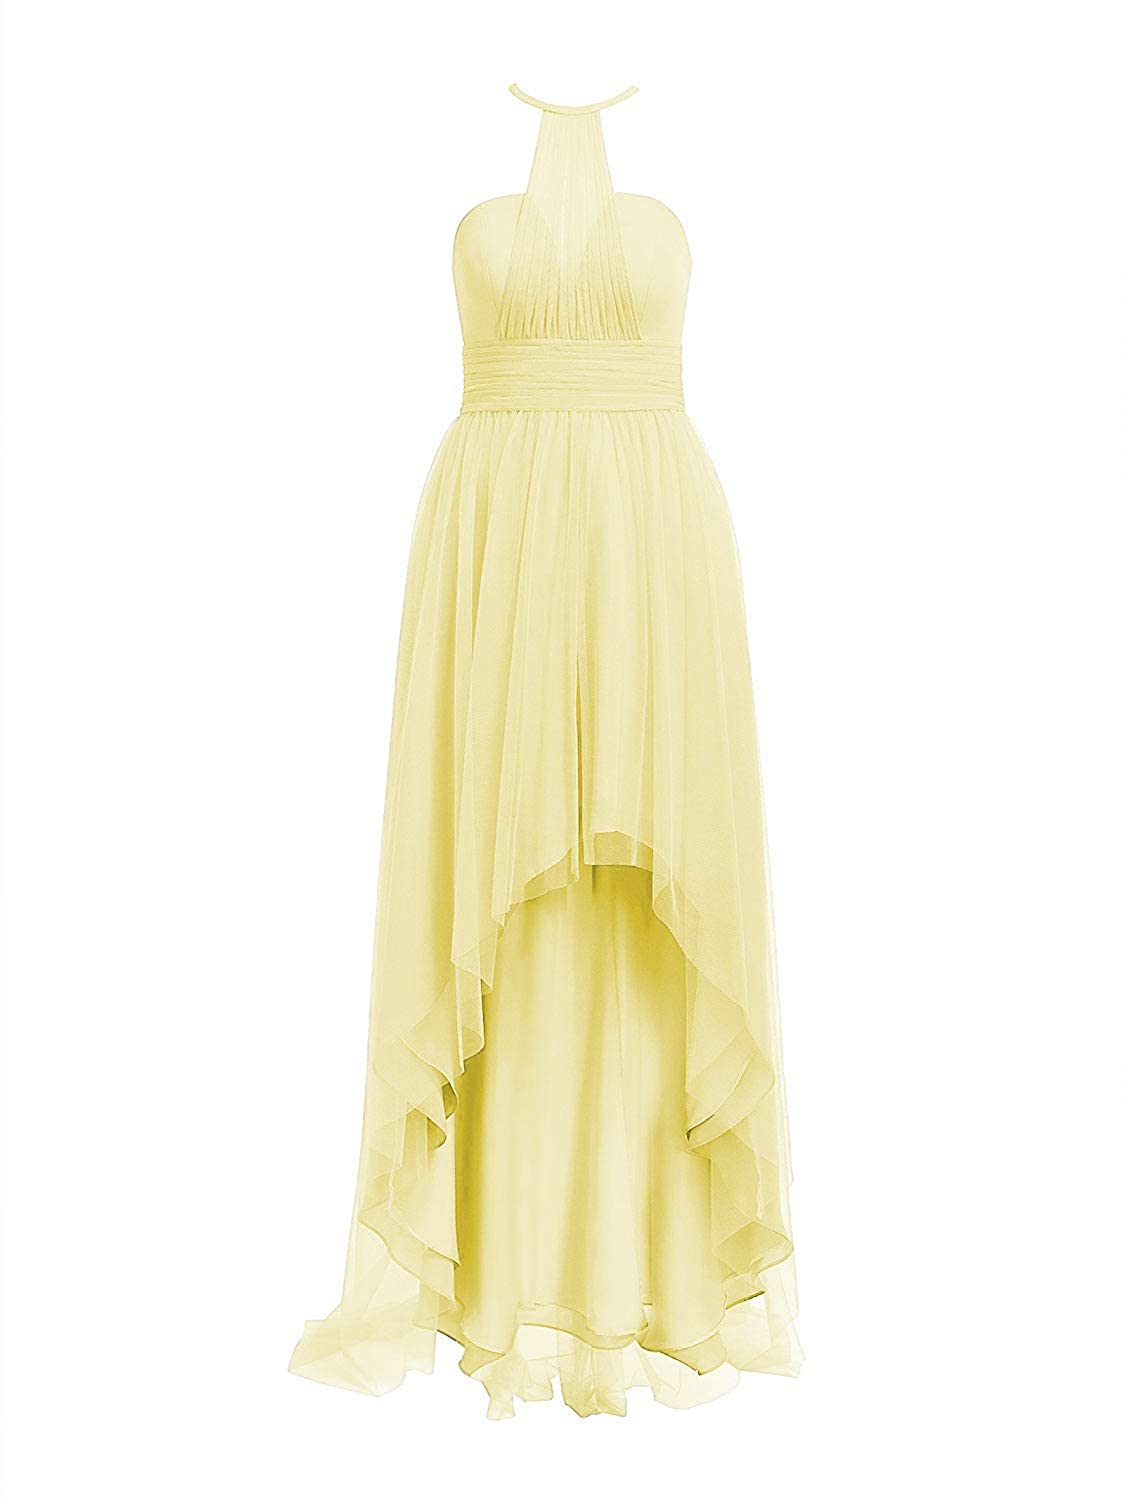 Yellow Tulle Bridesmaid Dresses High Low Halter Prom Party Gowns Backless Evening Formal Dress